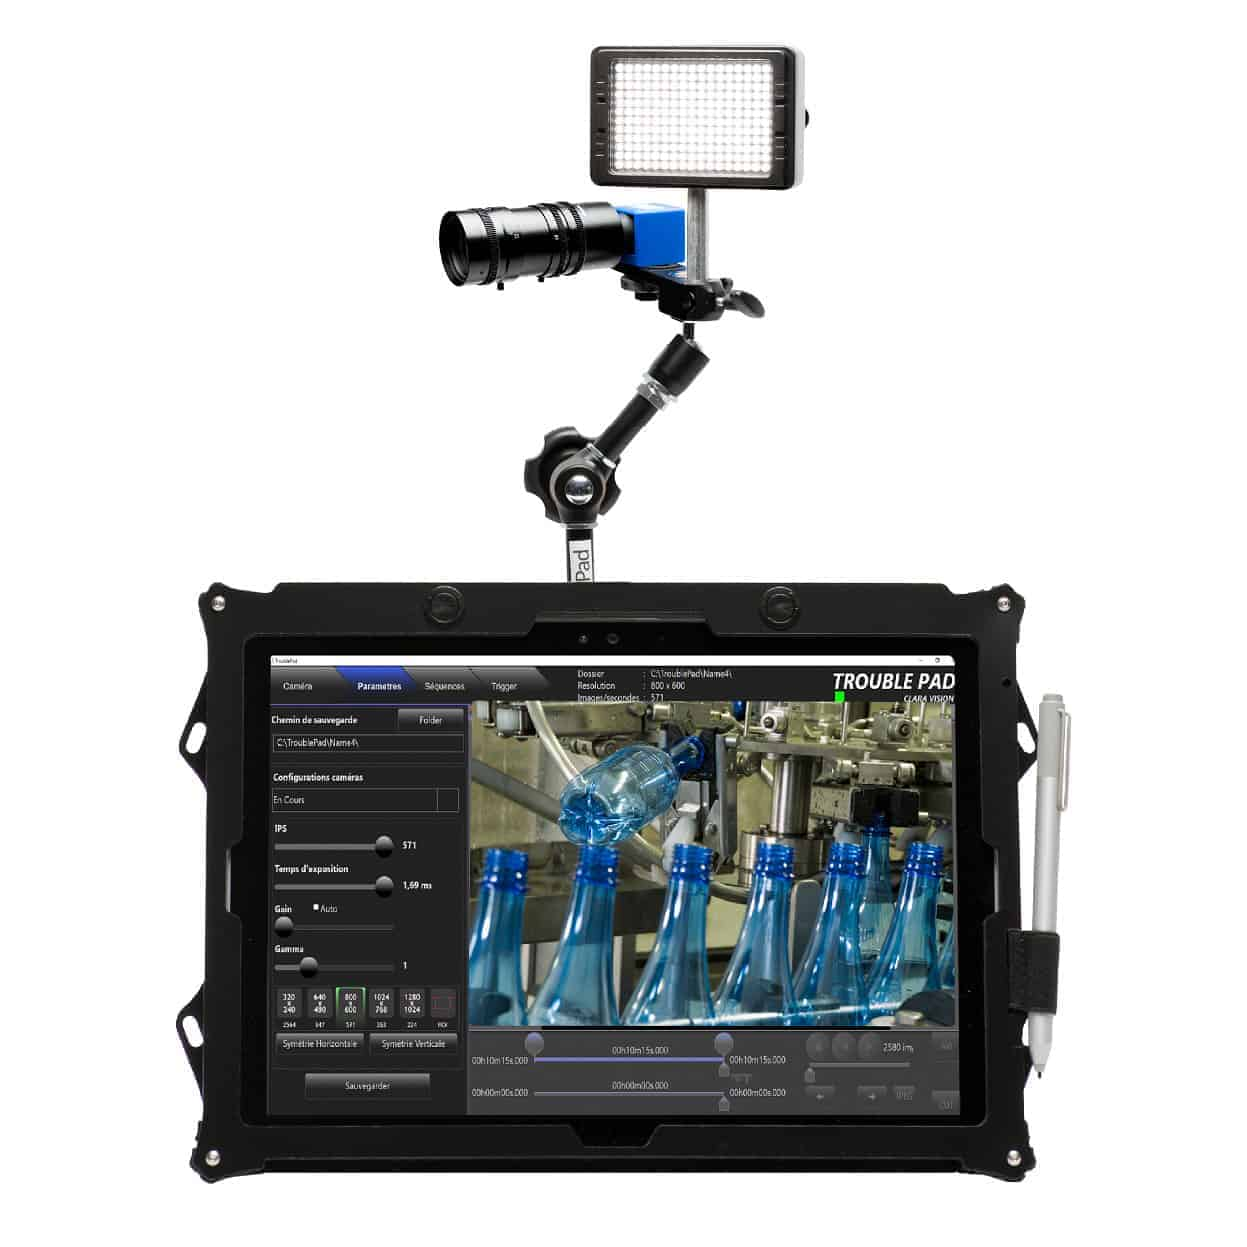 High speed camera with touchscreen tablet